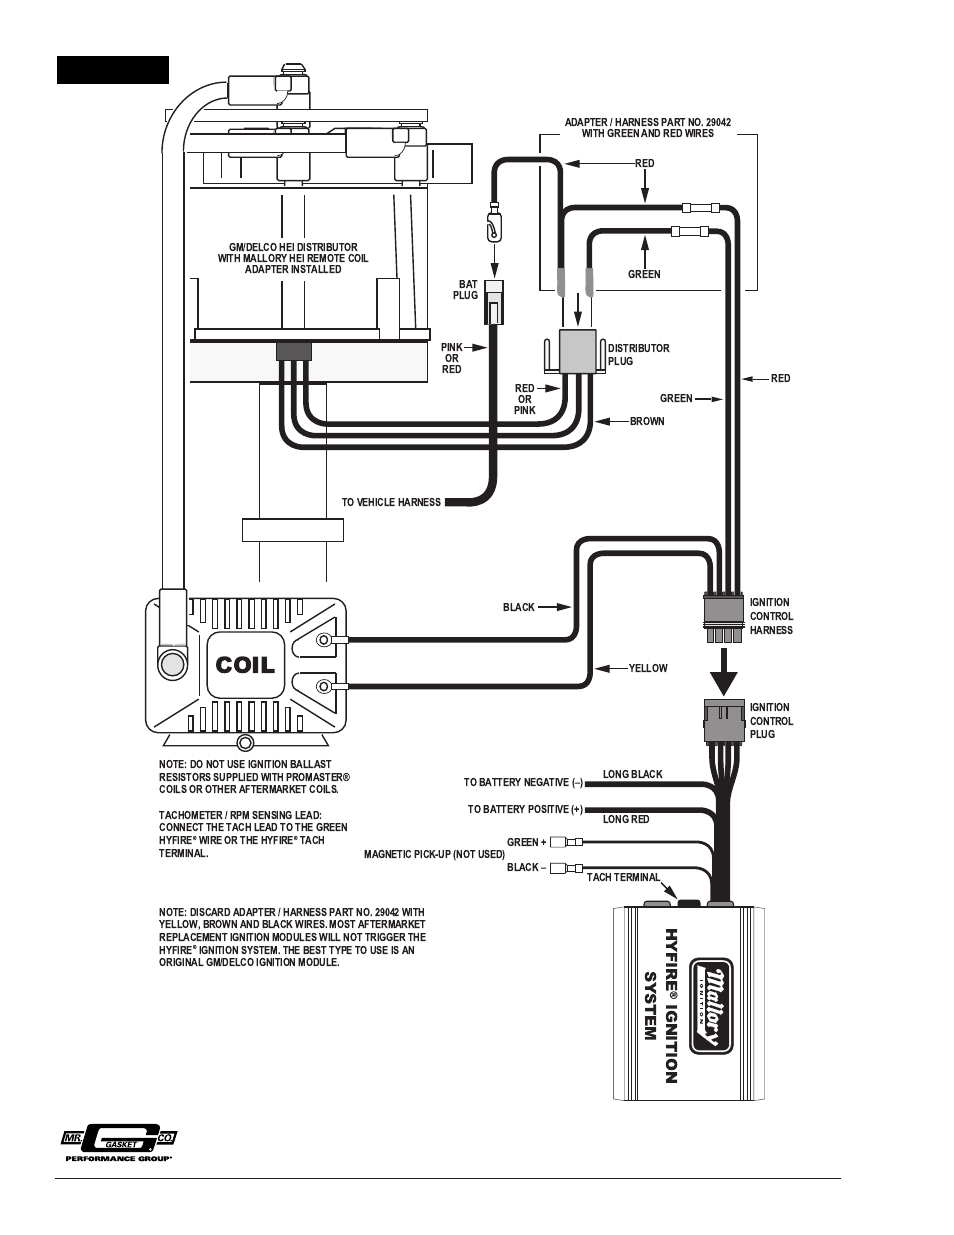 Ford Small Block Hei Distributor Wiring Diagram In Addition Chevy Hei